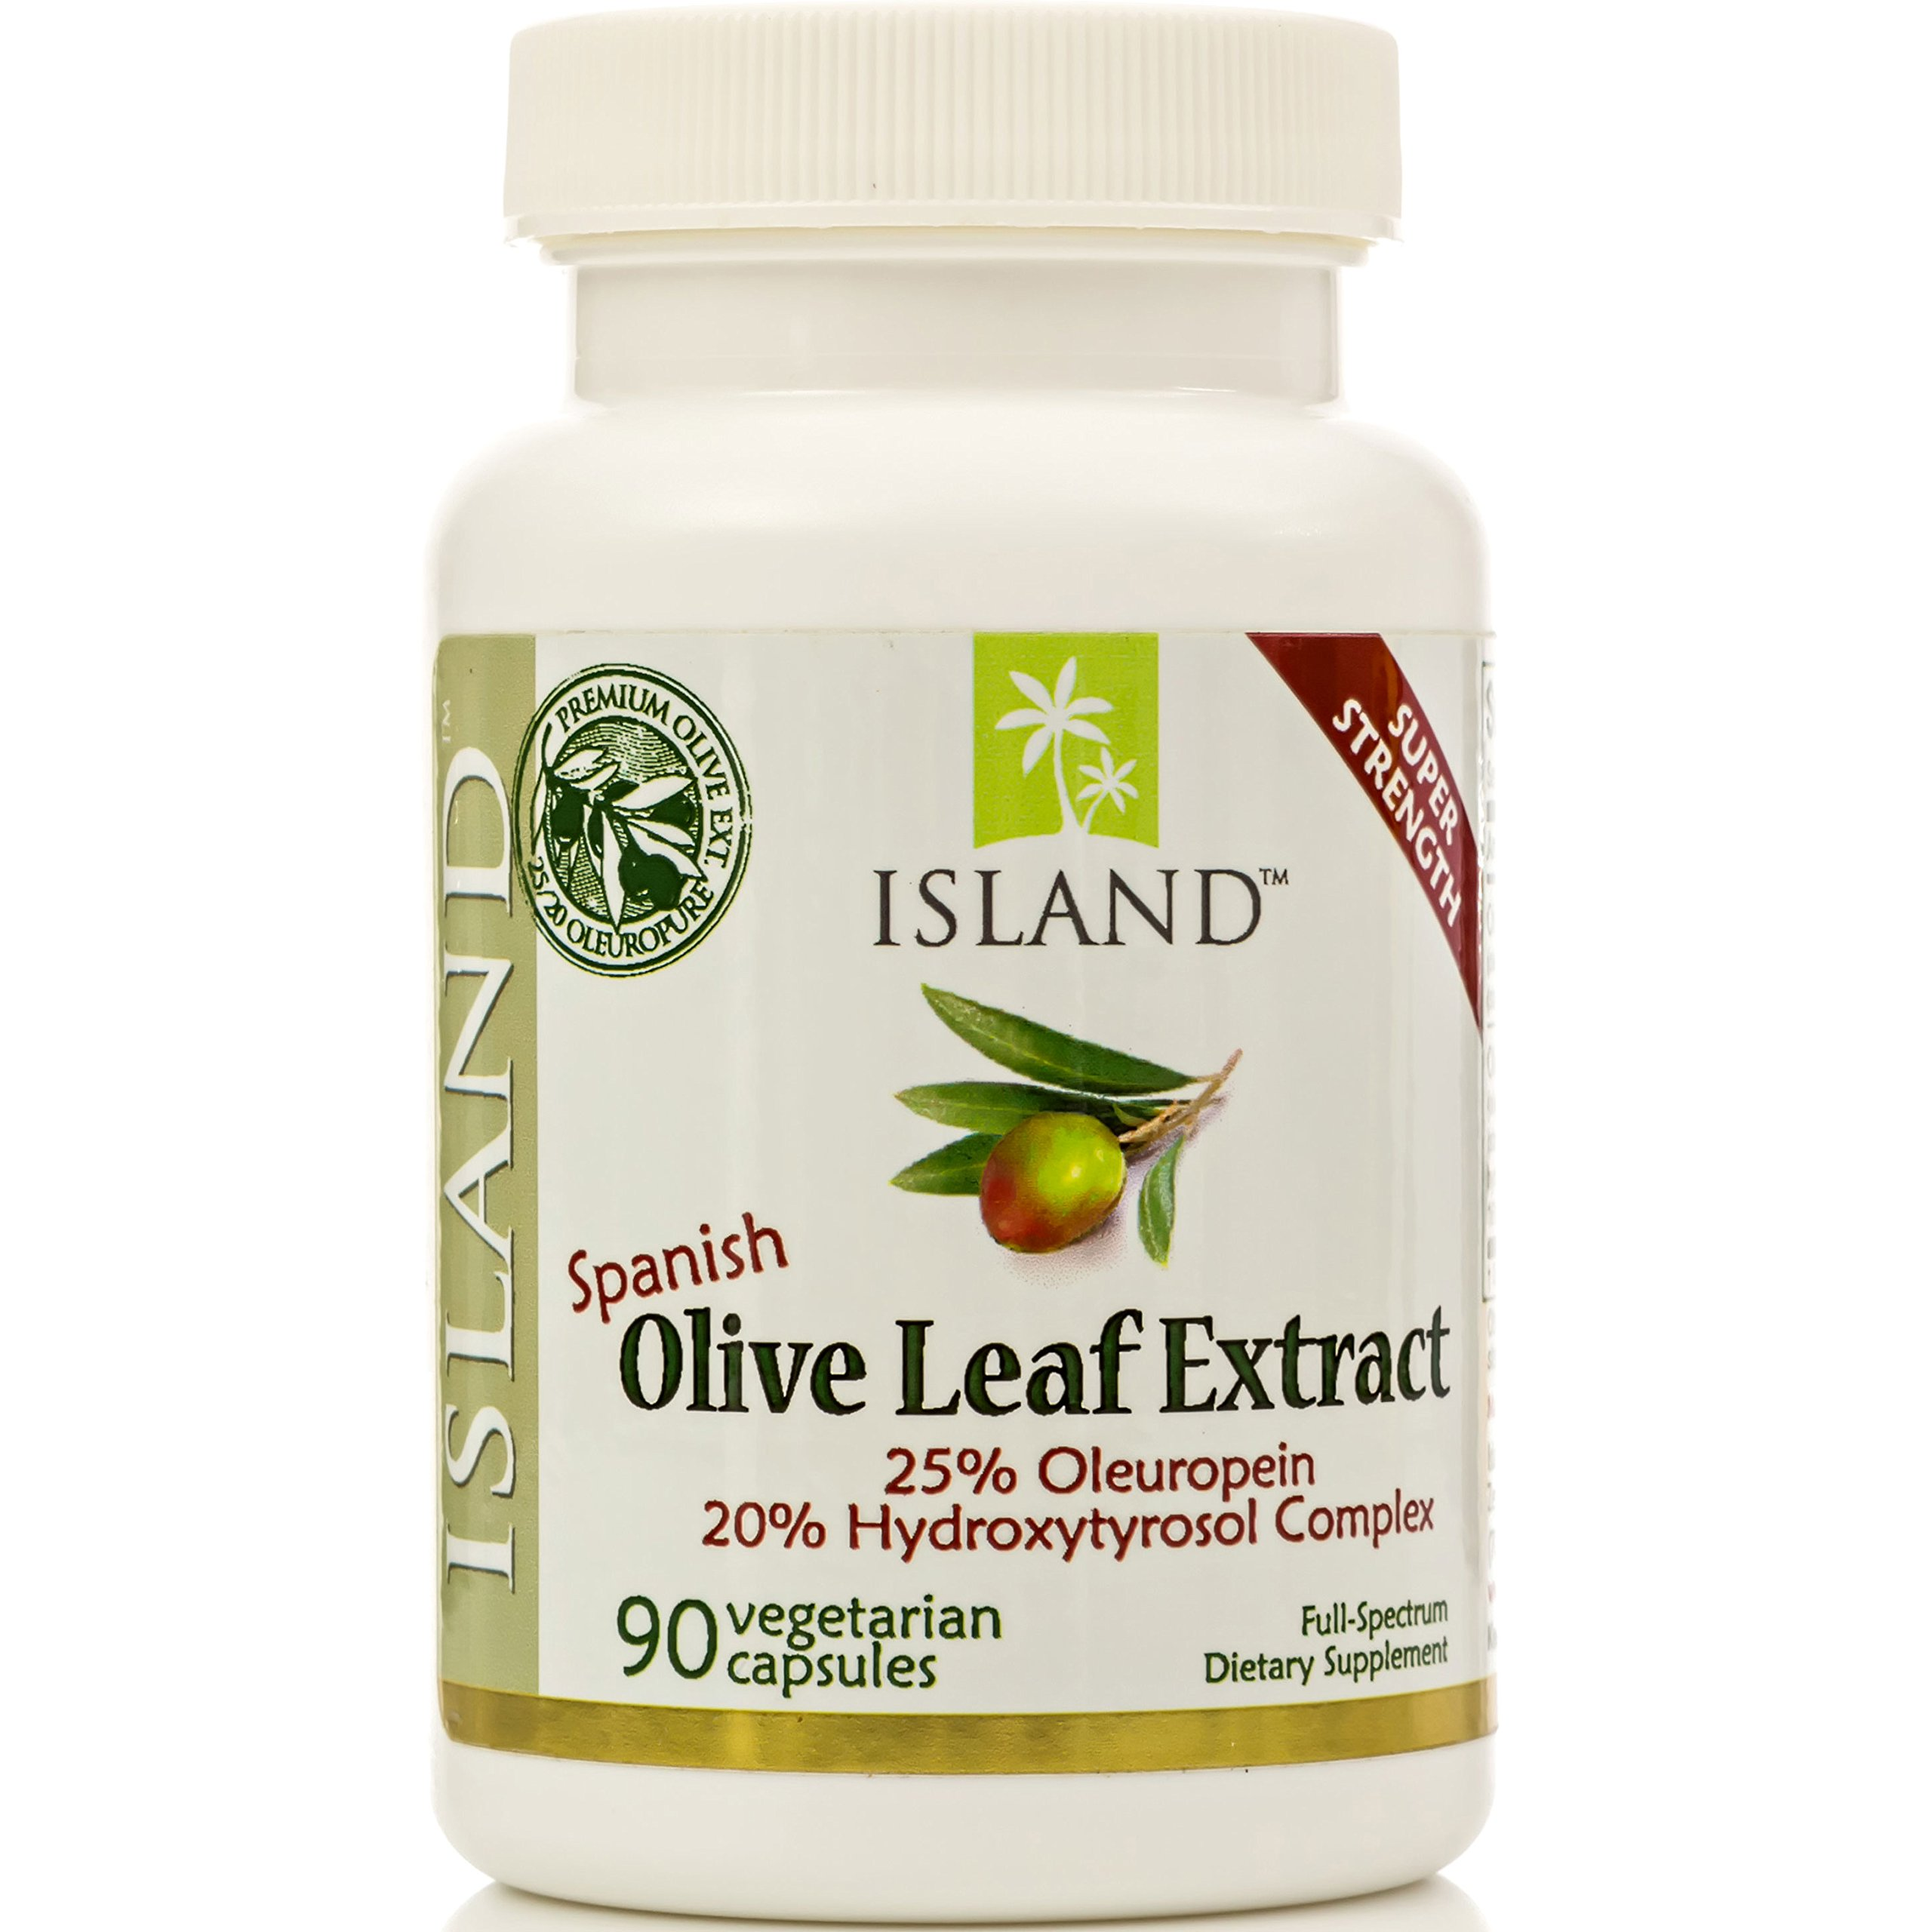 Real European Olive Leaf Extract, 25% Oleuropein - Super-Strength, 500 mg, 90 capsules, plus Hydroxytyrosol Complex. Professional-Strength from Island Nutrition®